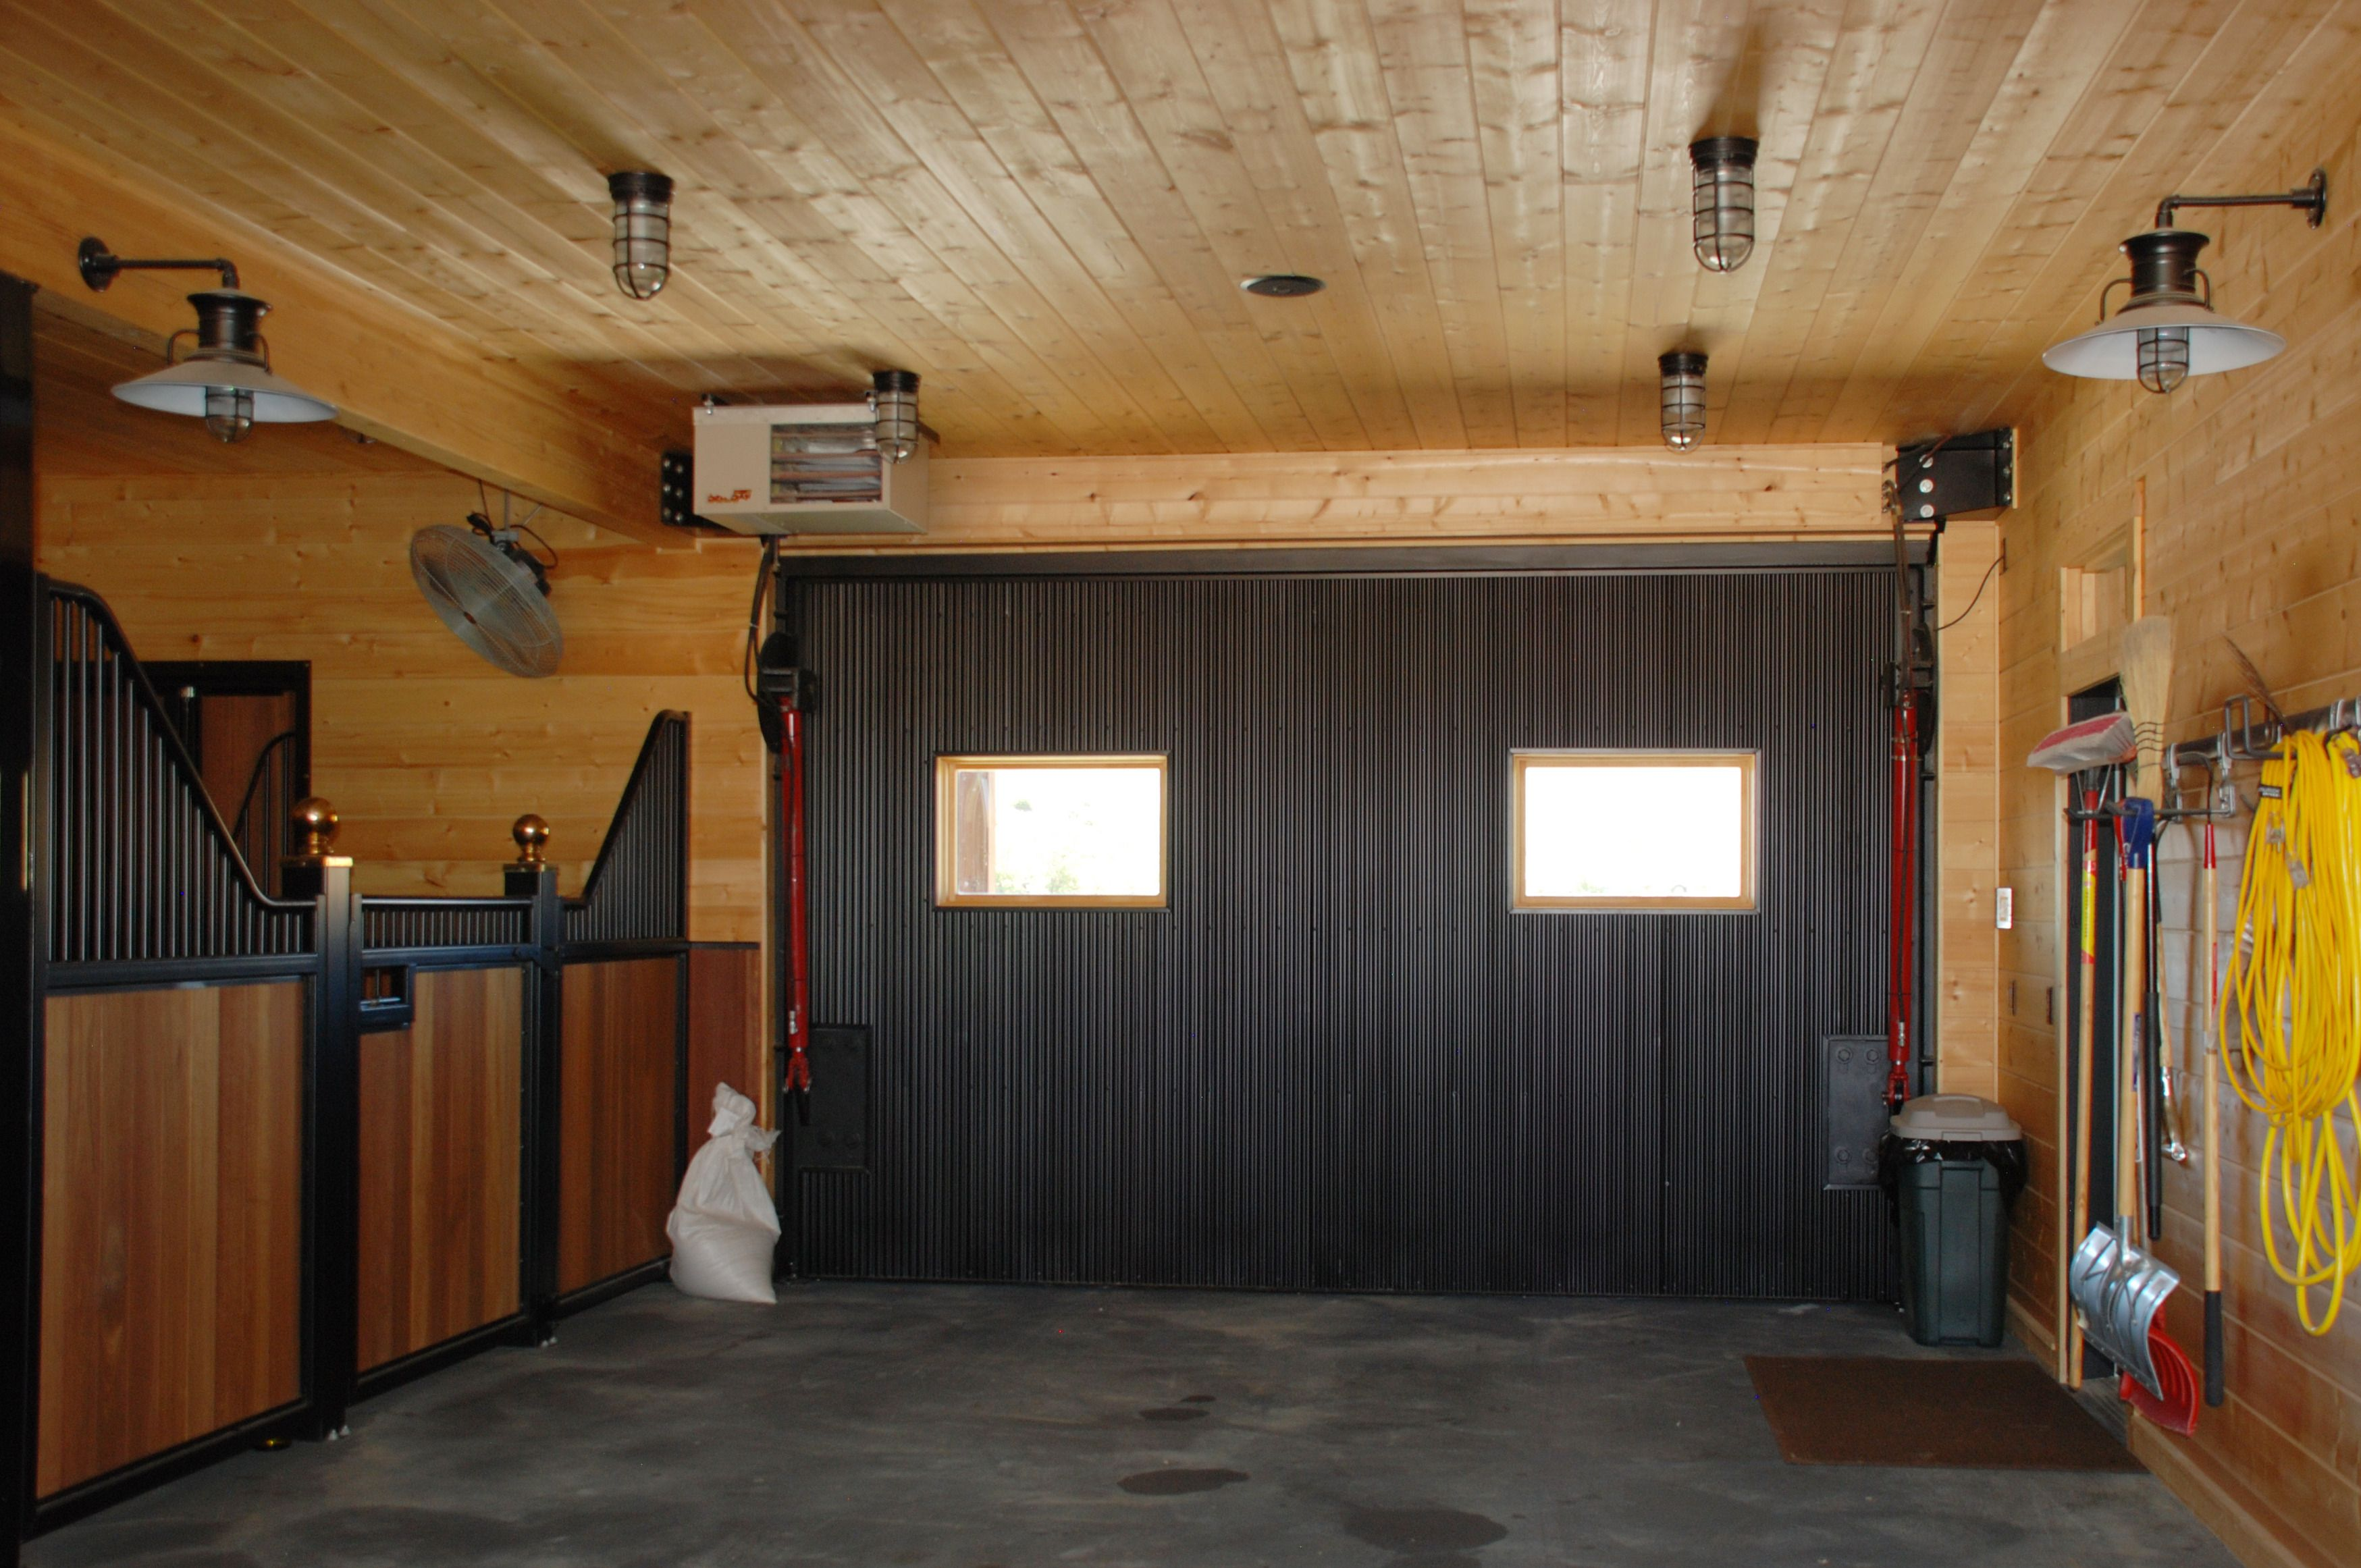 Corrugated metal siding interior walls